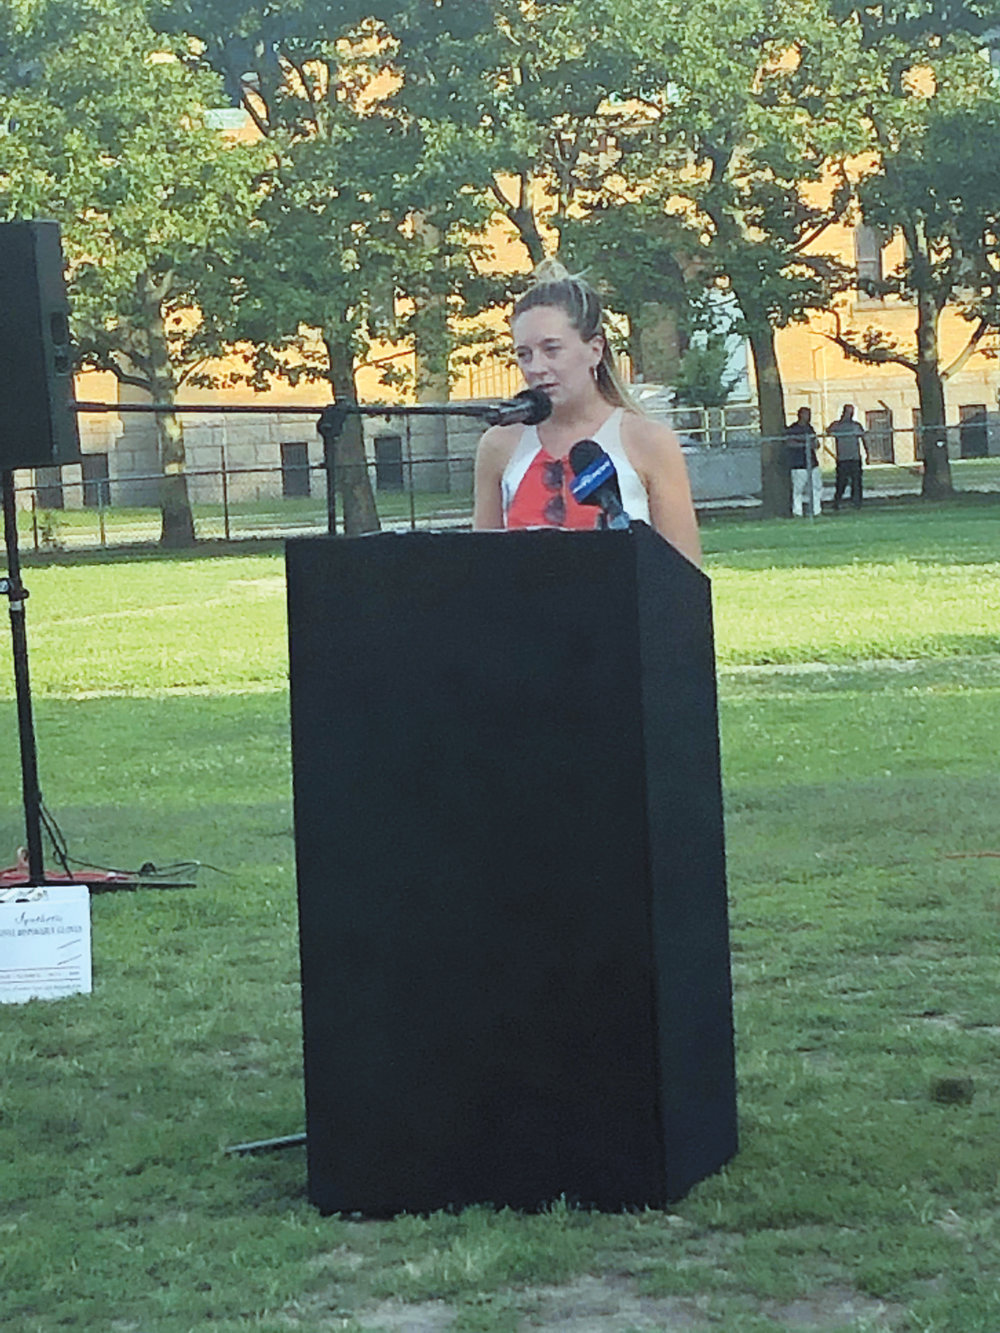 UNITED AGAINST VIOLENCE: Katherine Kerwin, Ward 12 Councilwoman from Providence, introduces the Vigil for Change at Dexter Field.